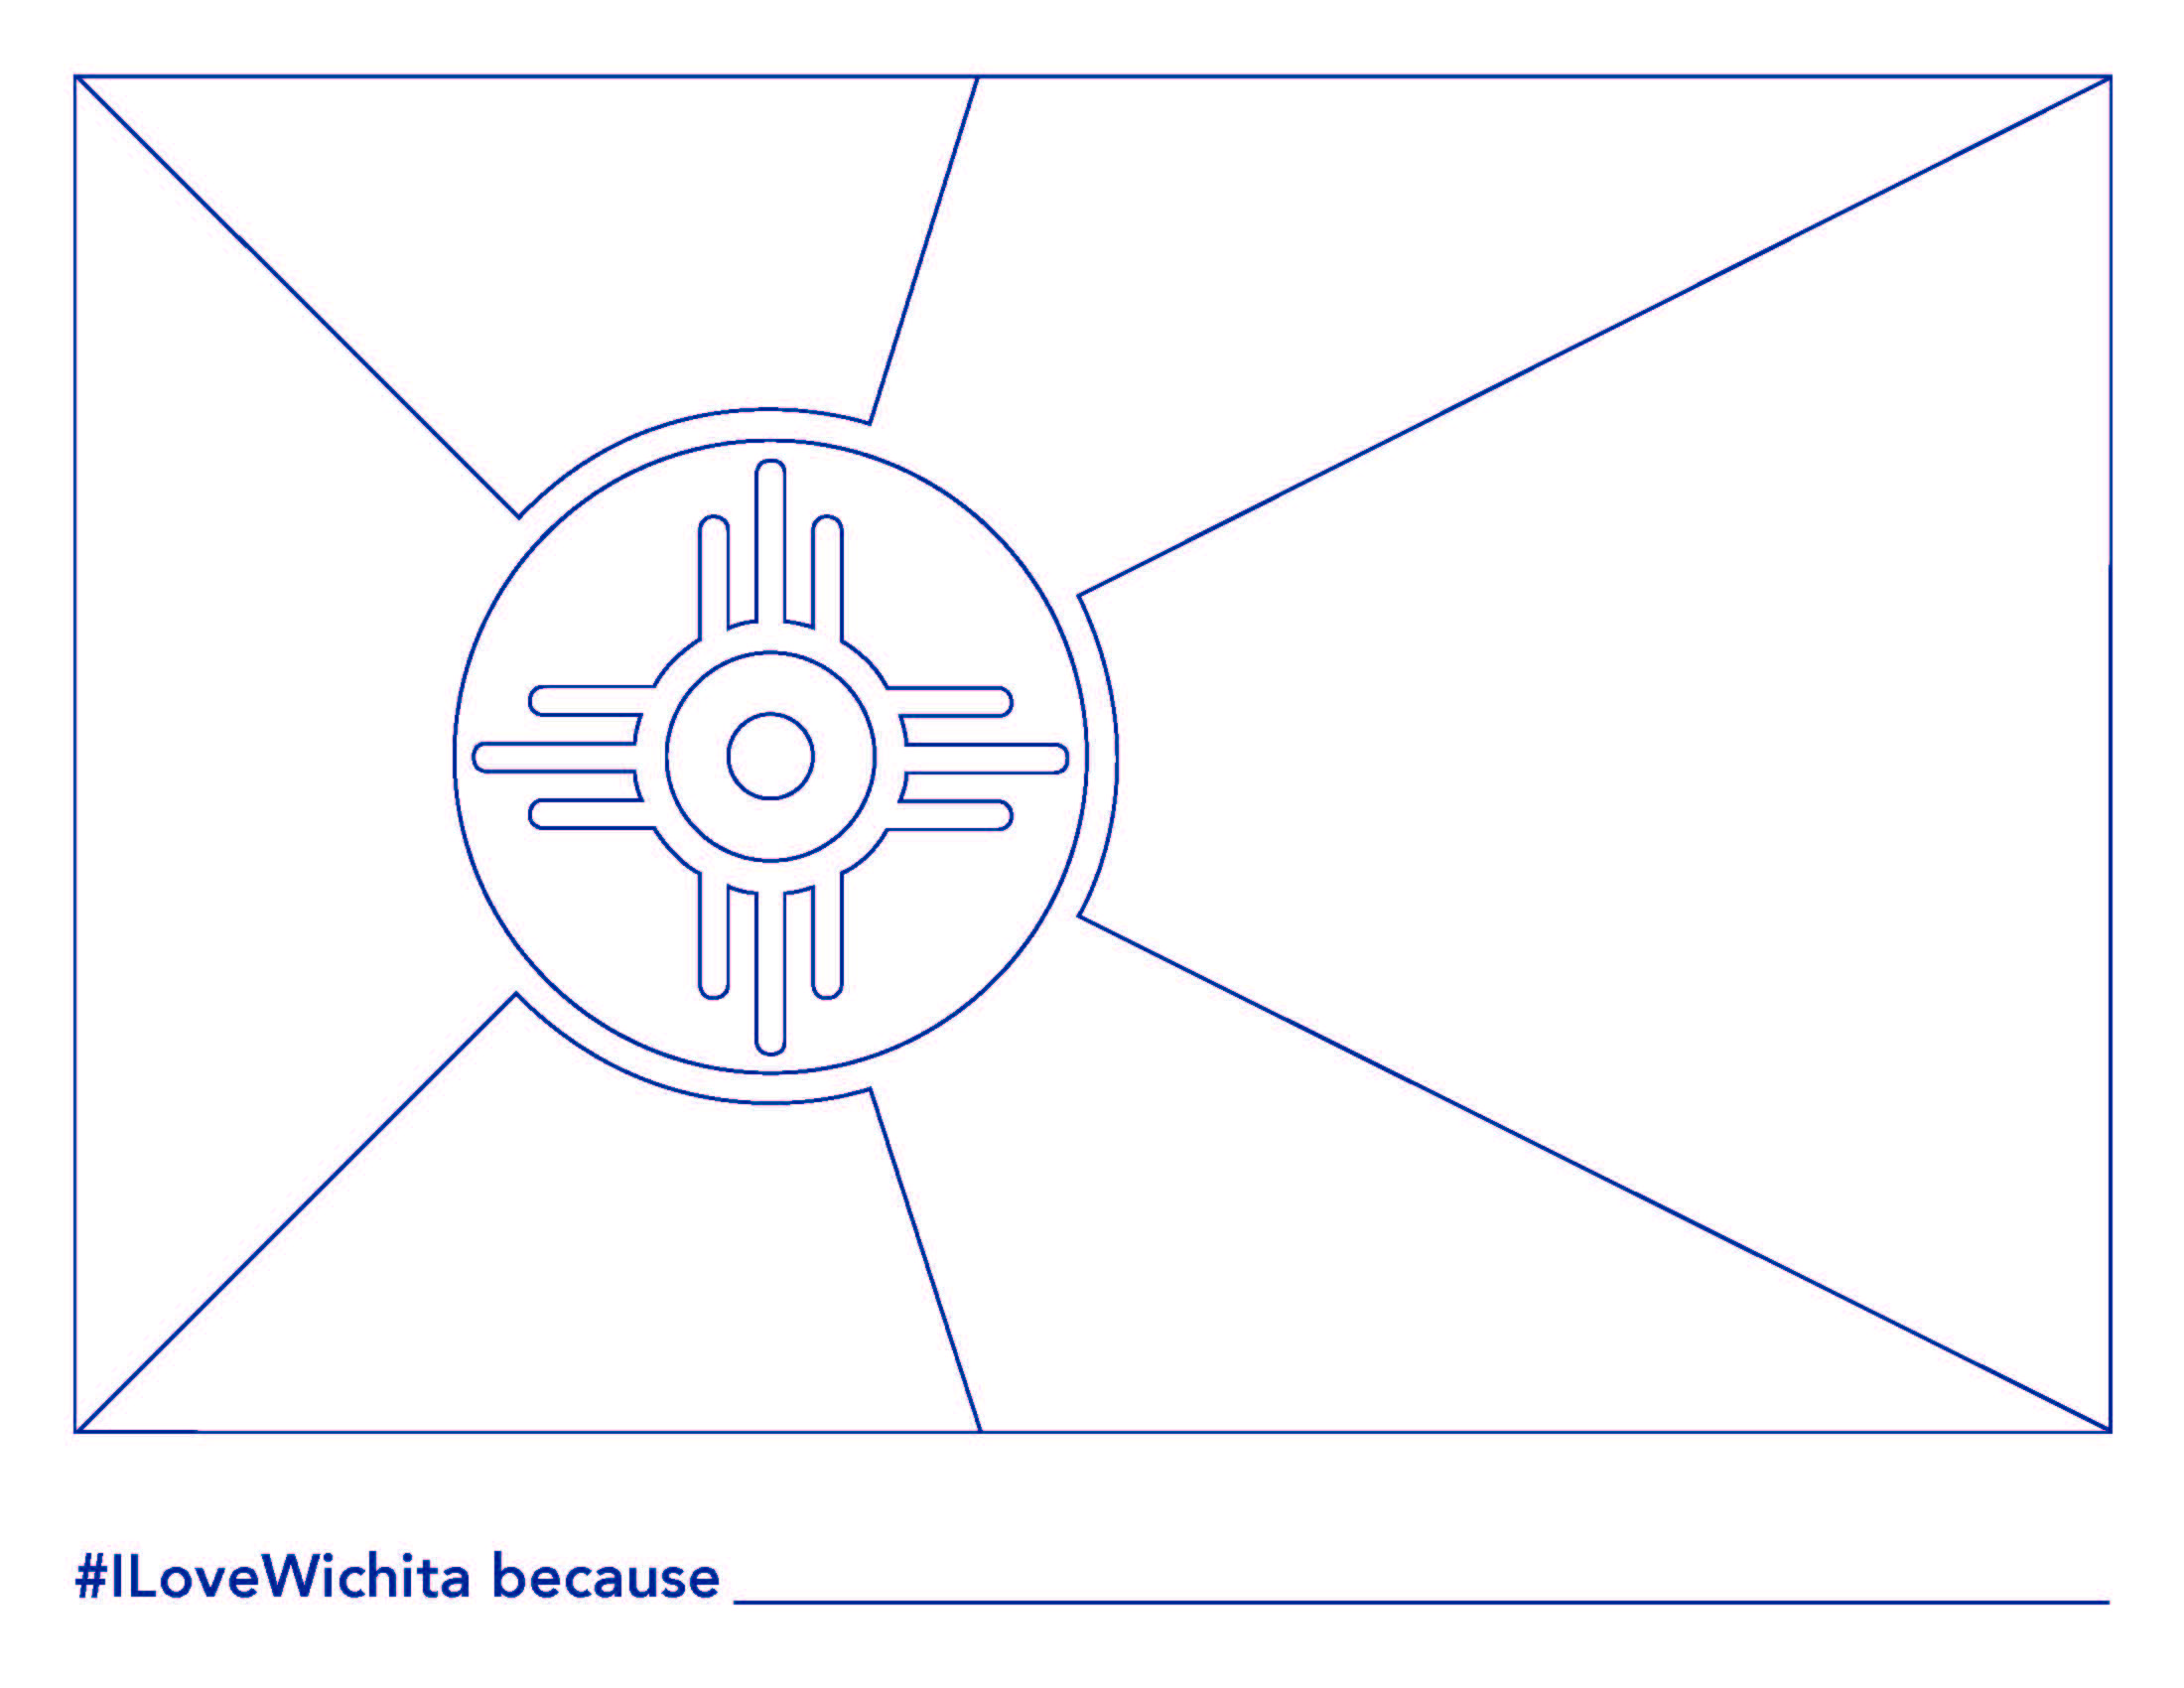 Wichita Flag Coloring Sheet Page 1 2 200 1 700 Pixels